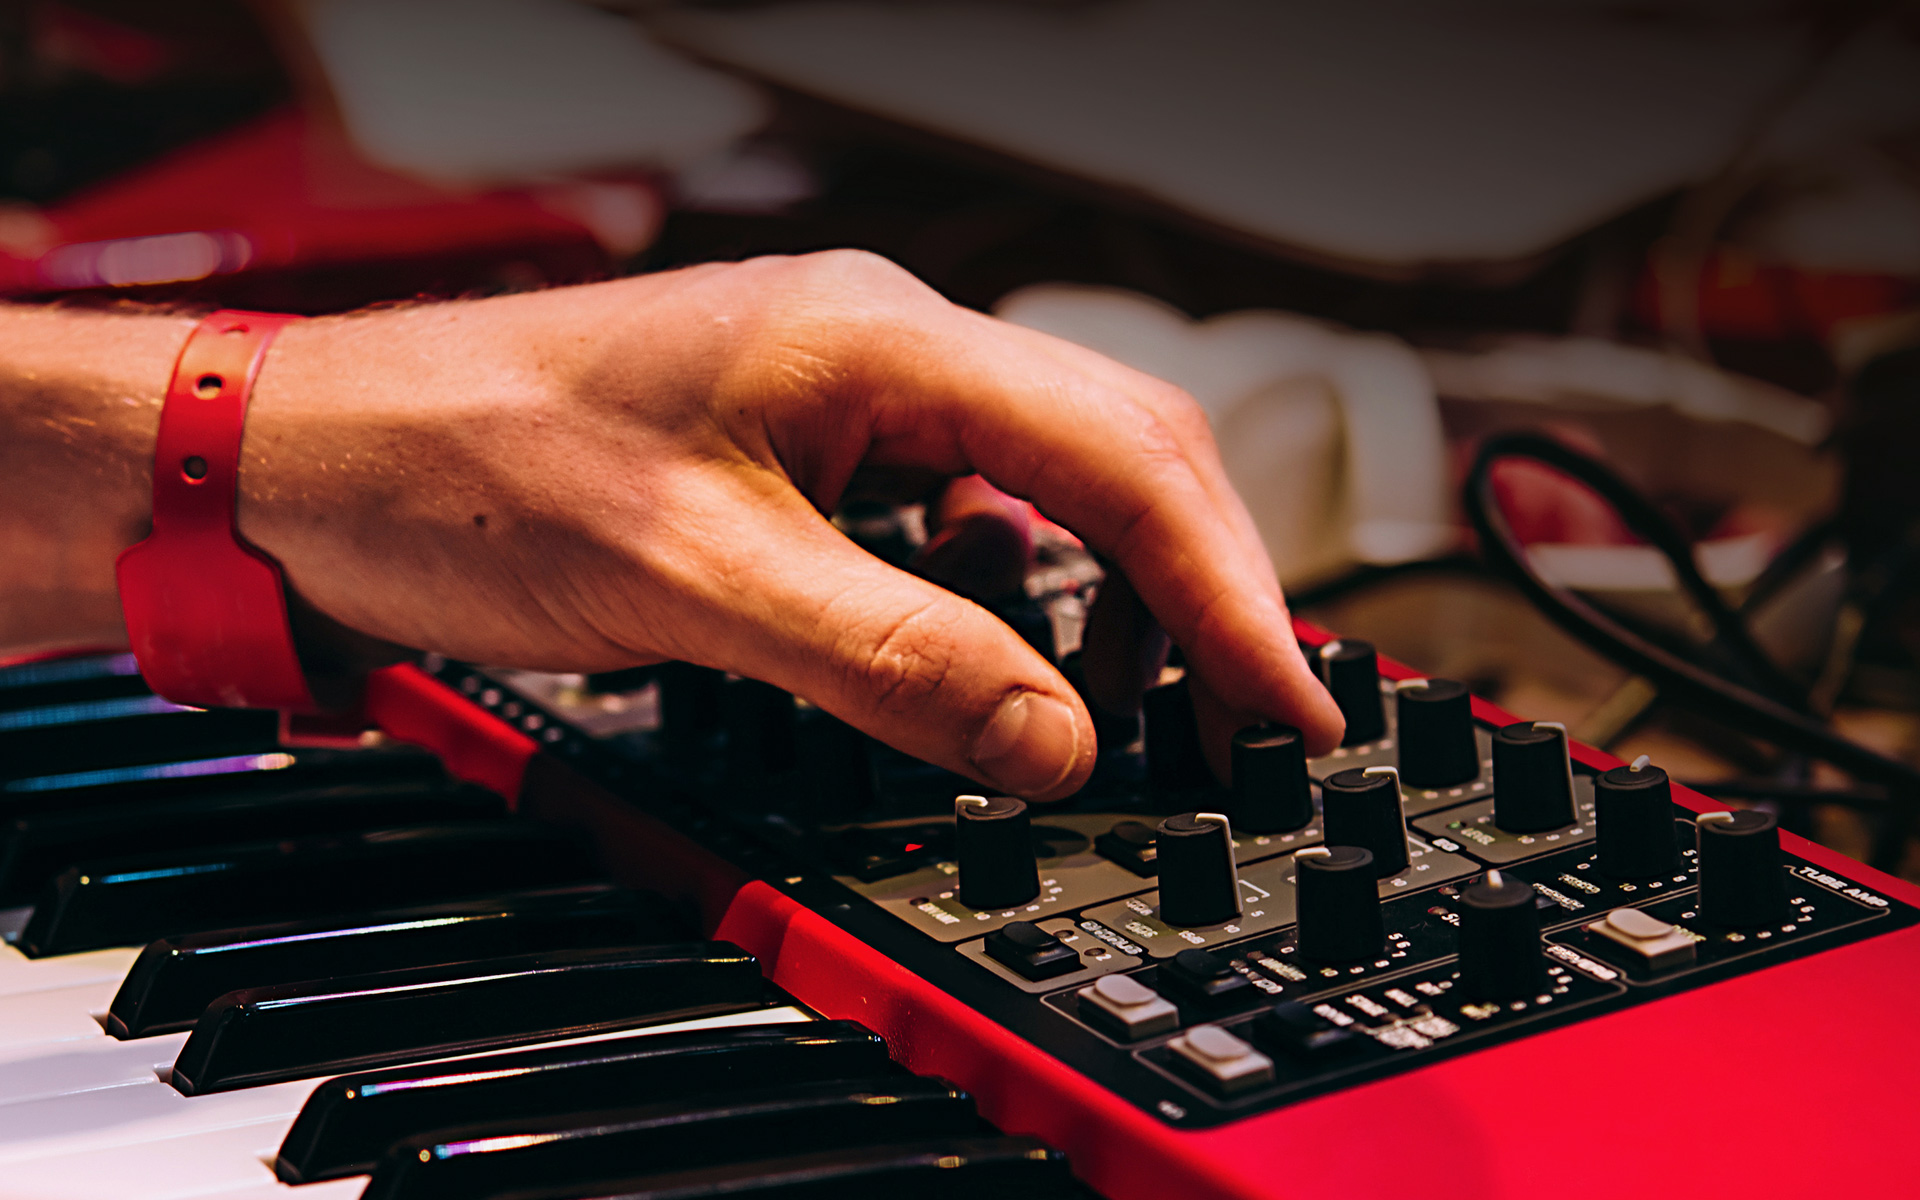 How to Make Electronic House Music at Home